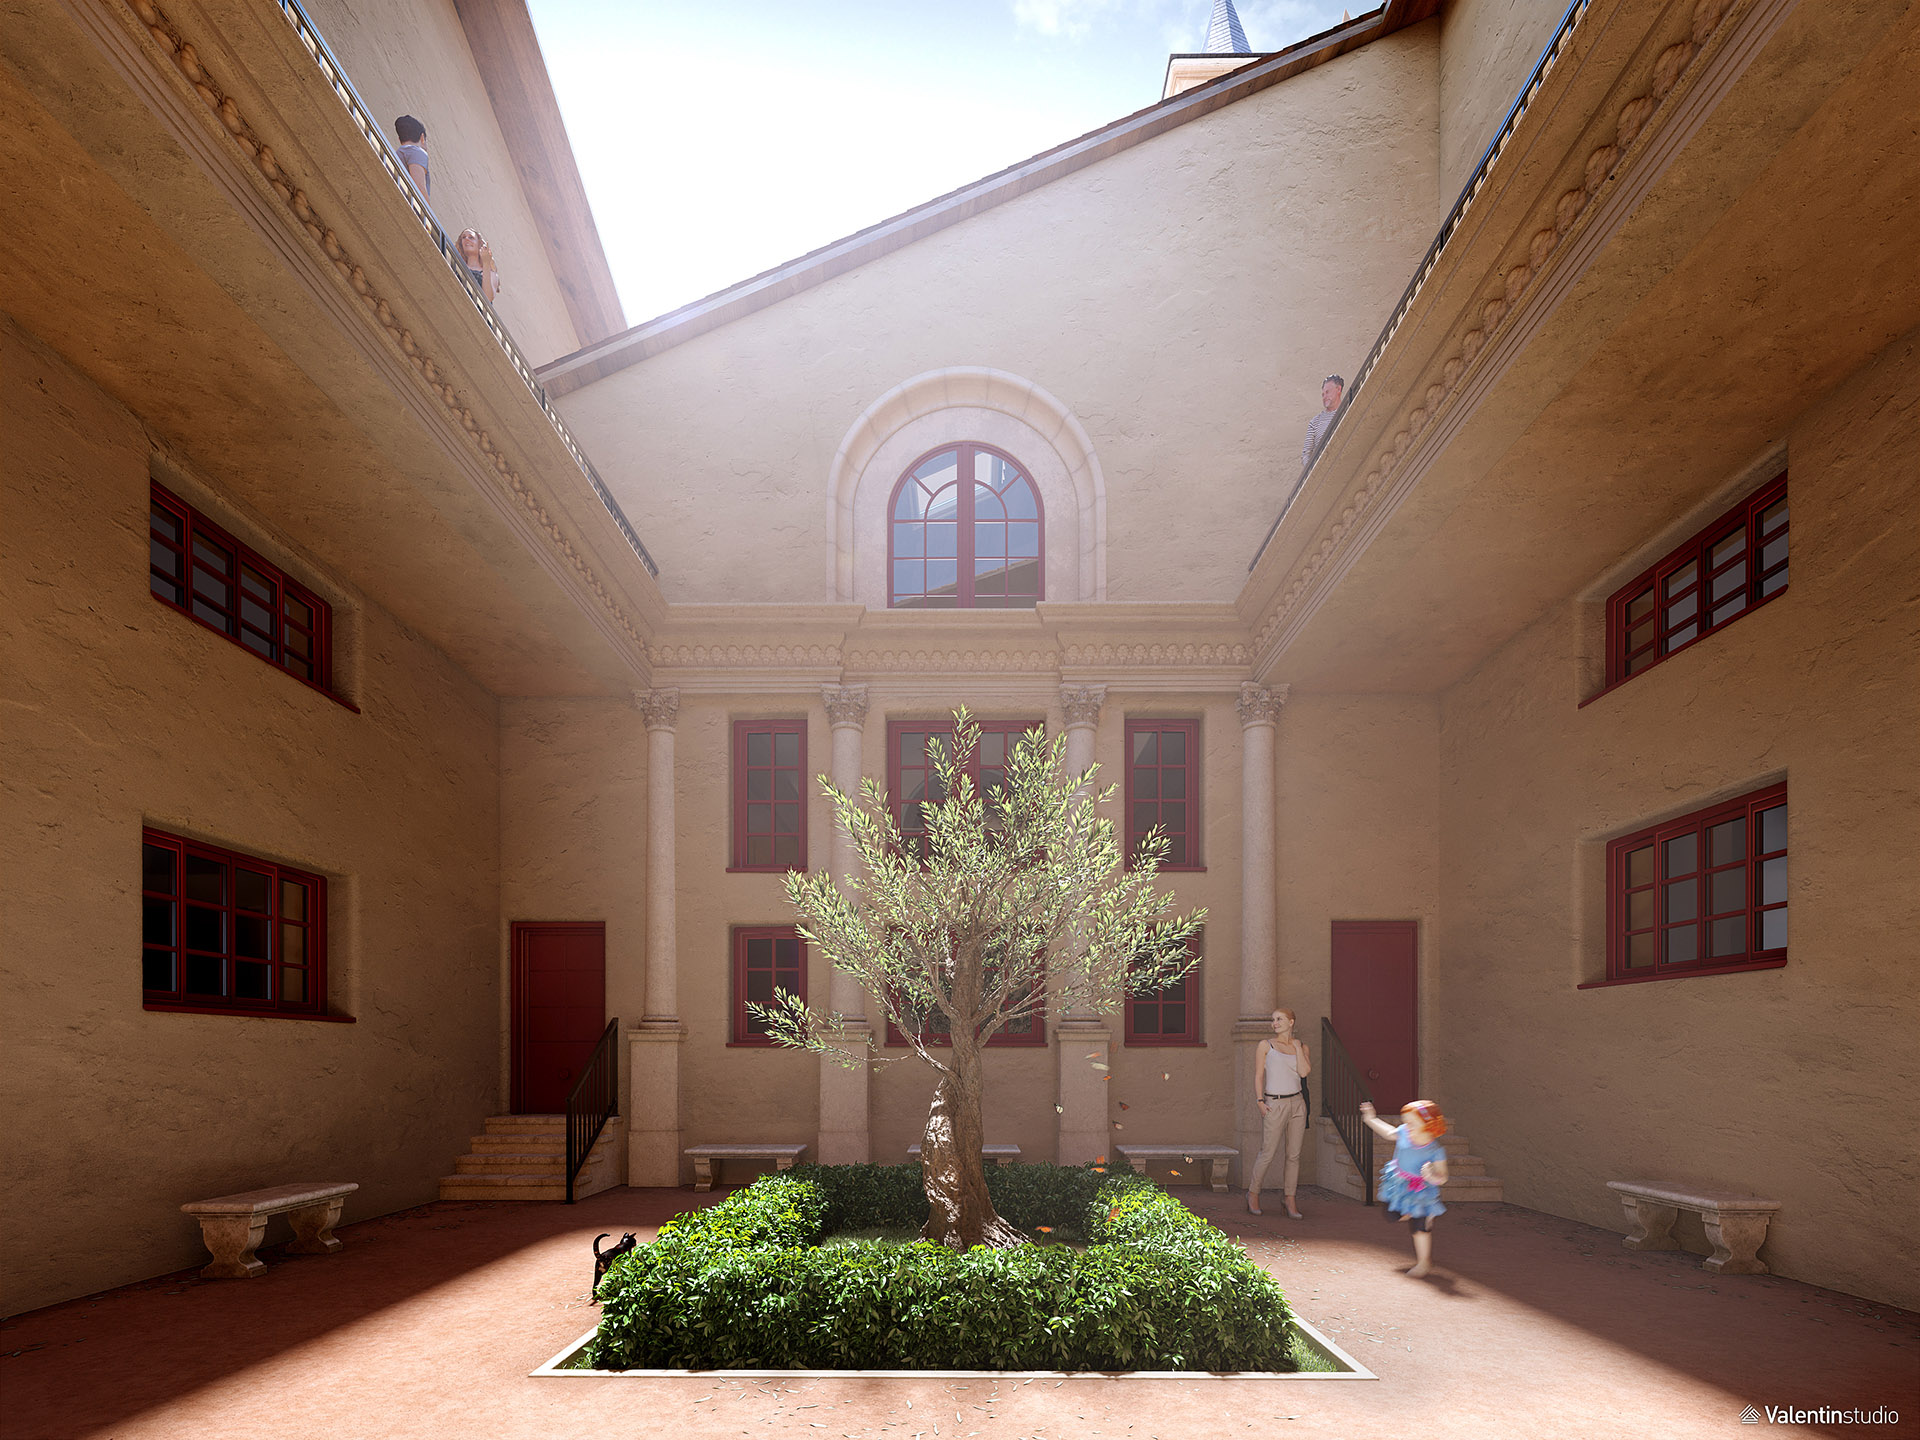 3D representation of the patio of a convent with a plant space in the center